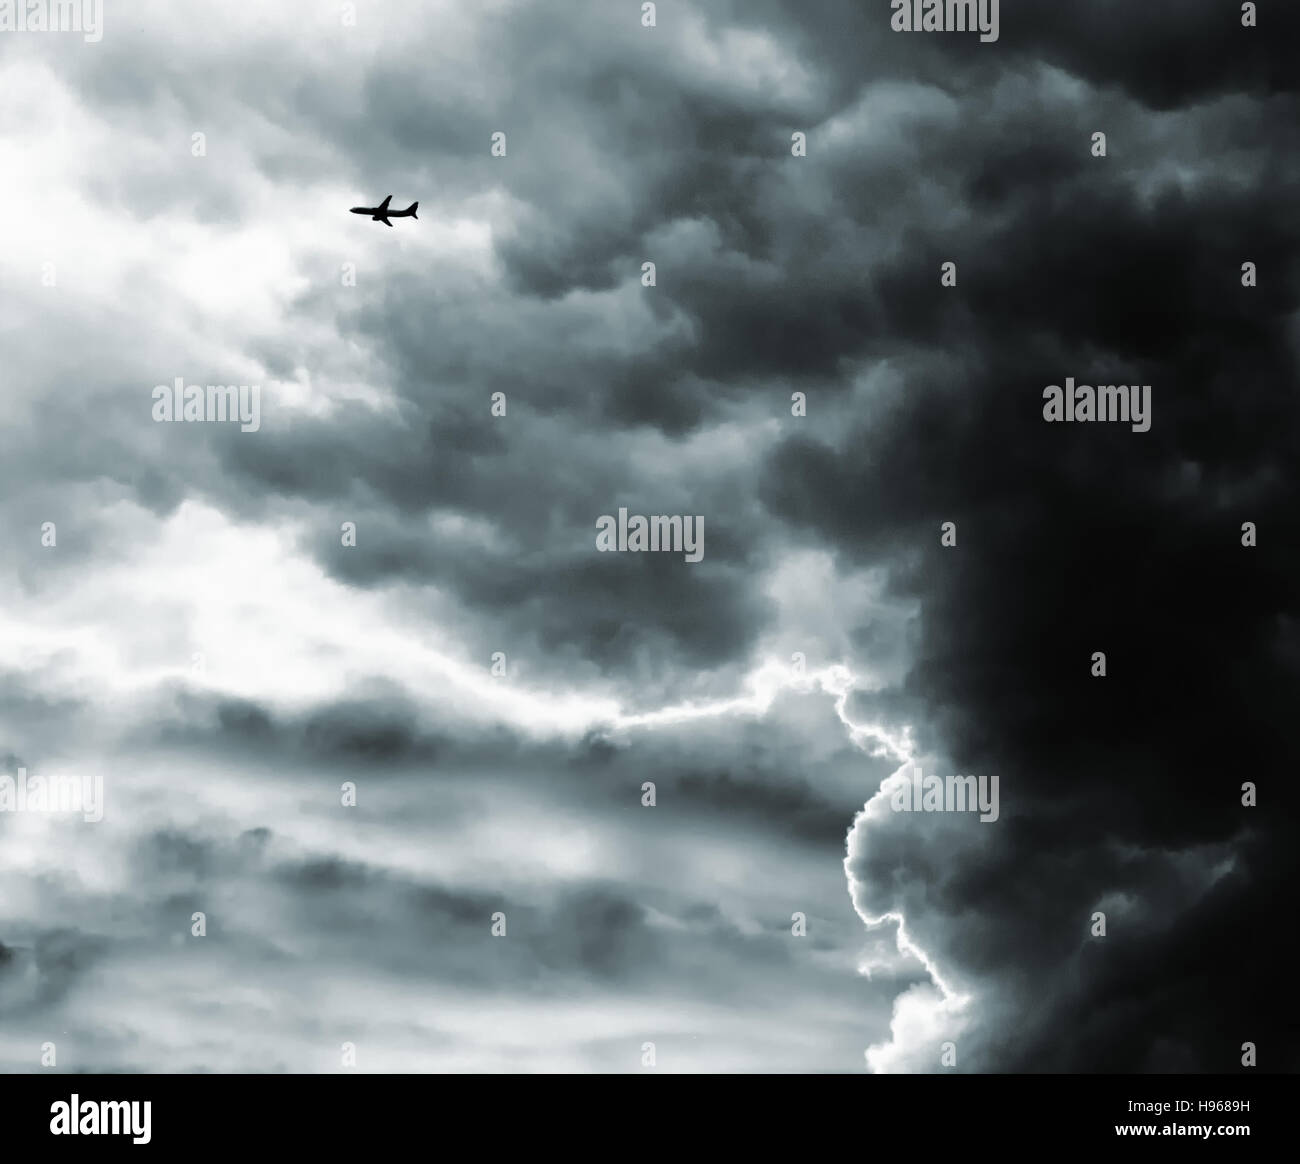 A distant aircraft flying past a dramatic, towering, dark storm cloud - Stock Image